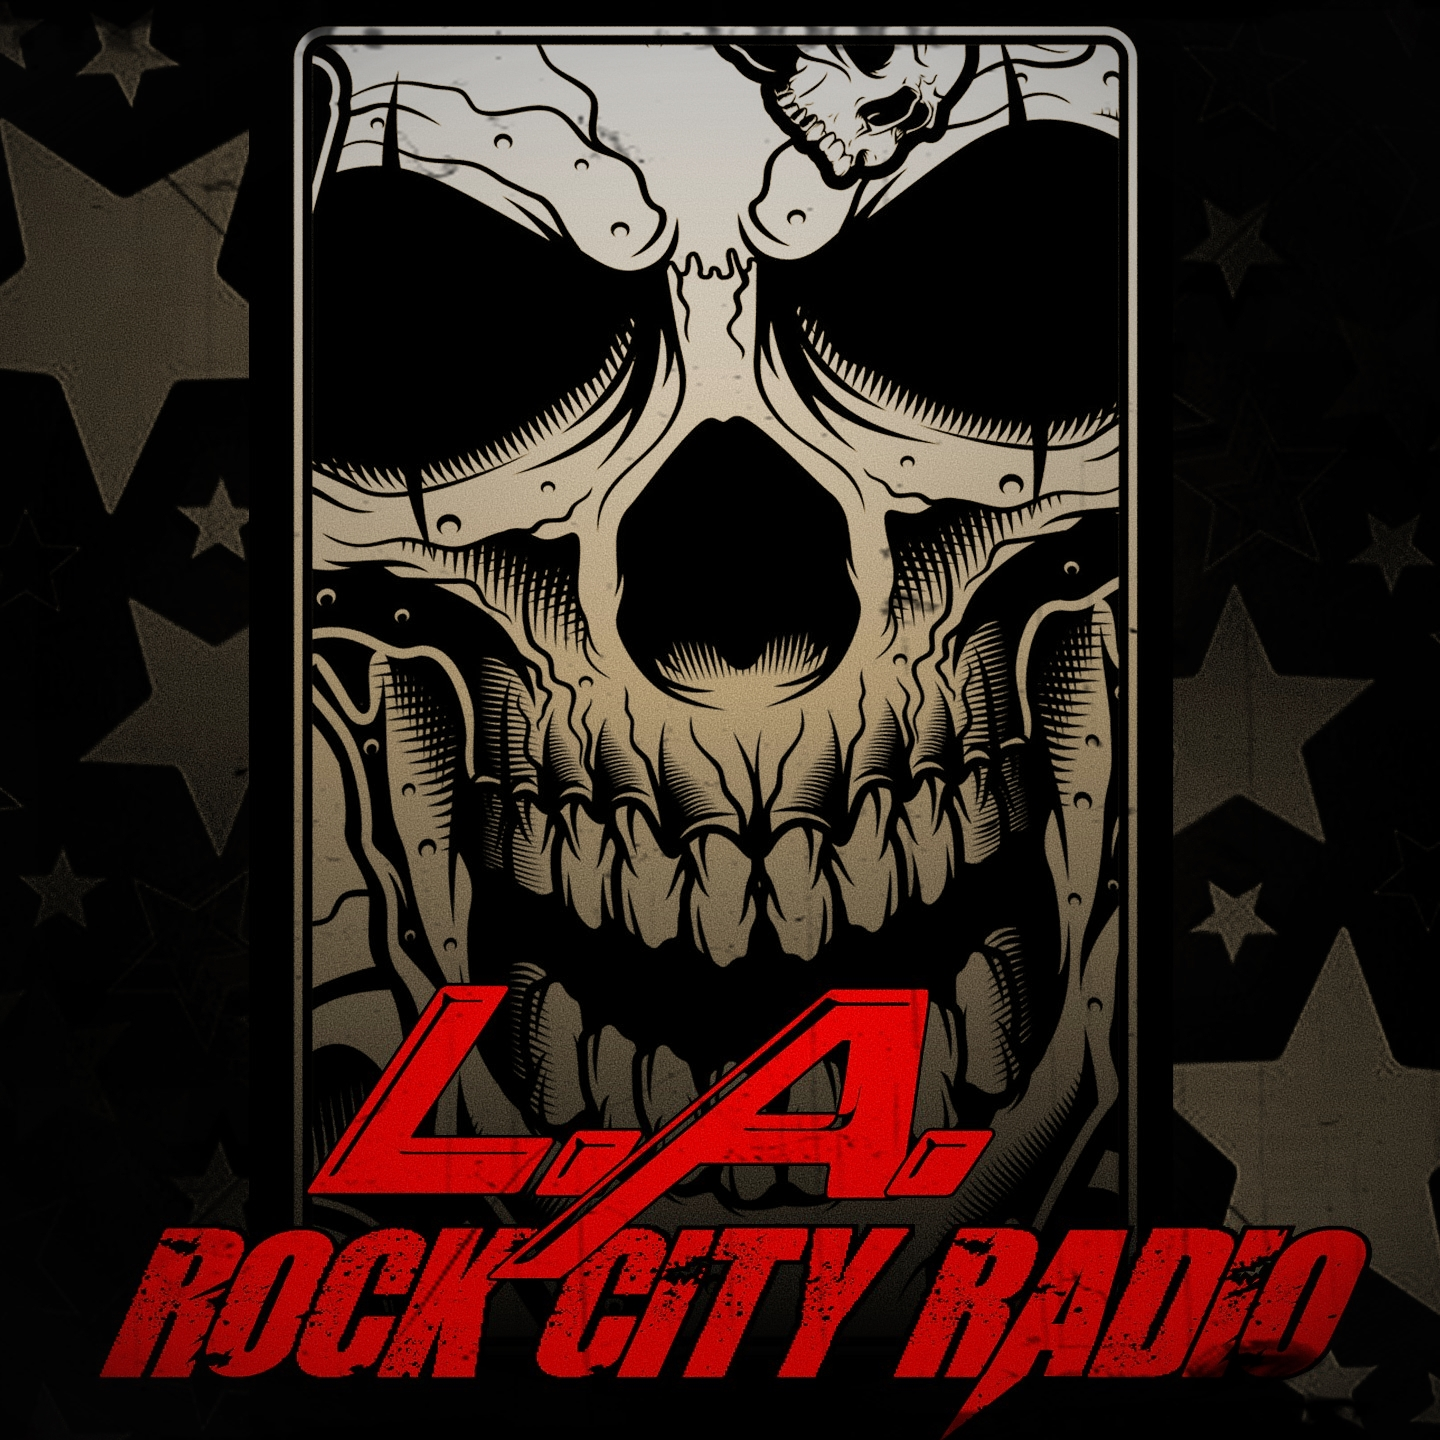 Art for L.A. Rock City Radio Station ID 2 by L.A. Rock City Radio